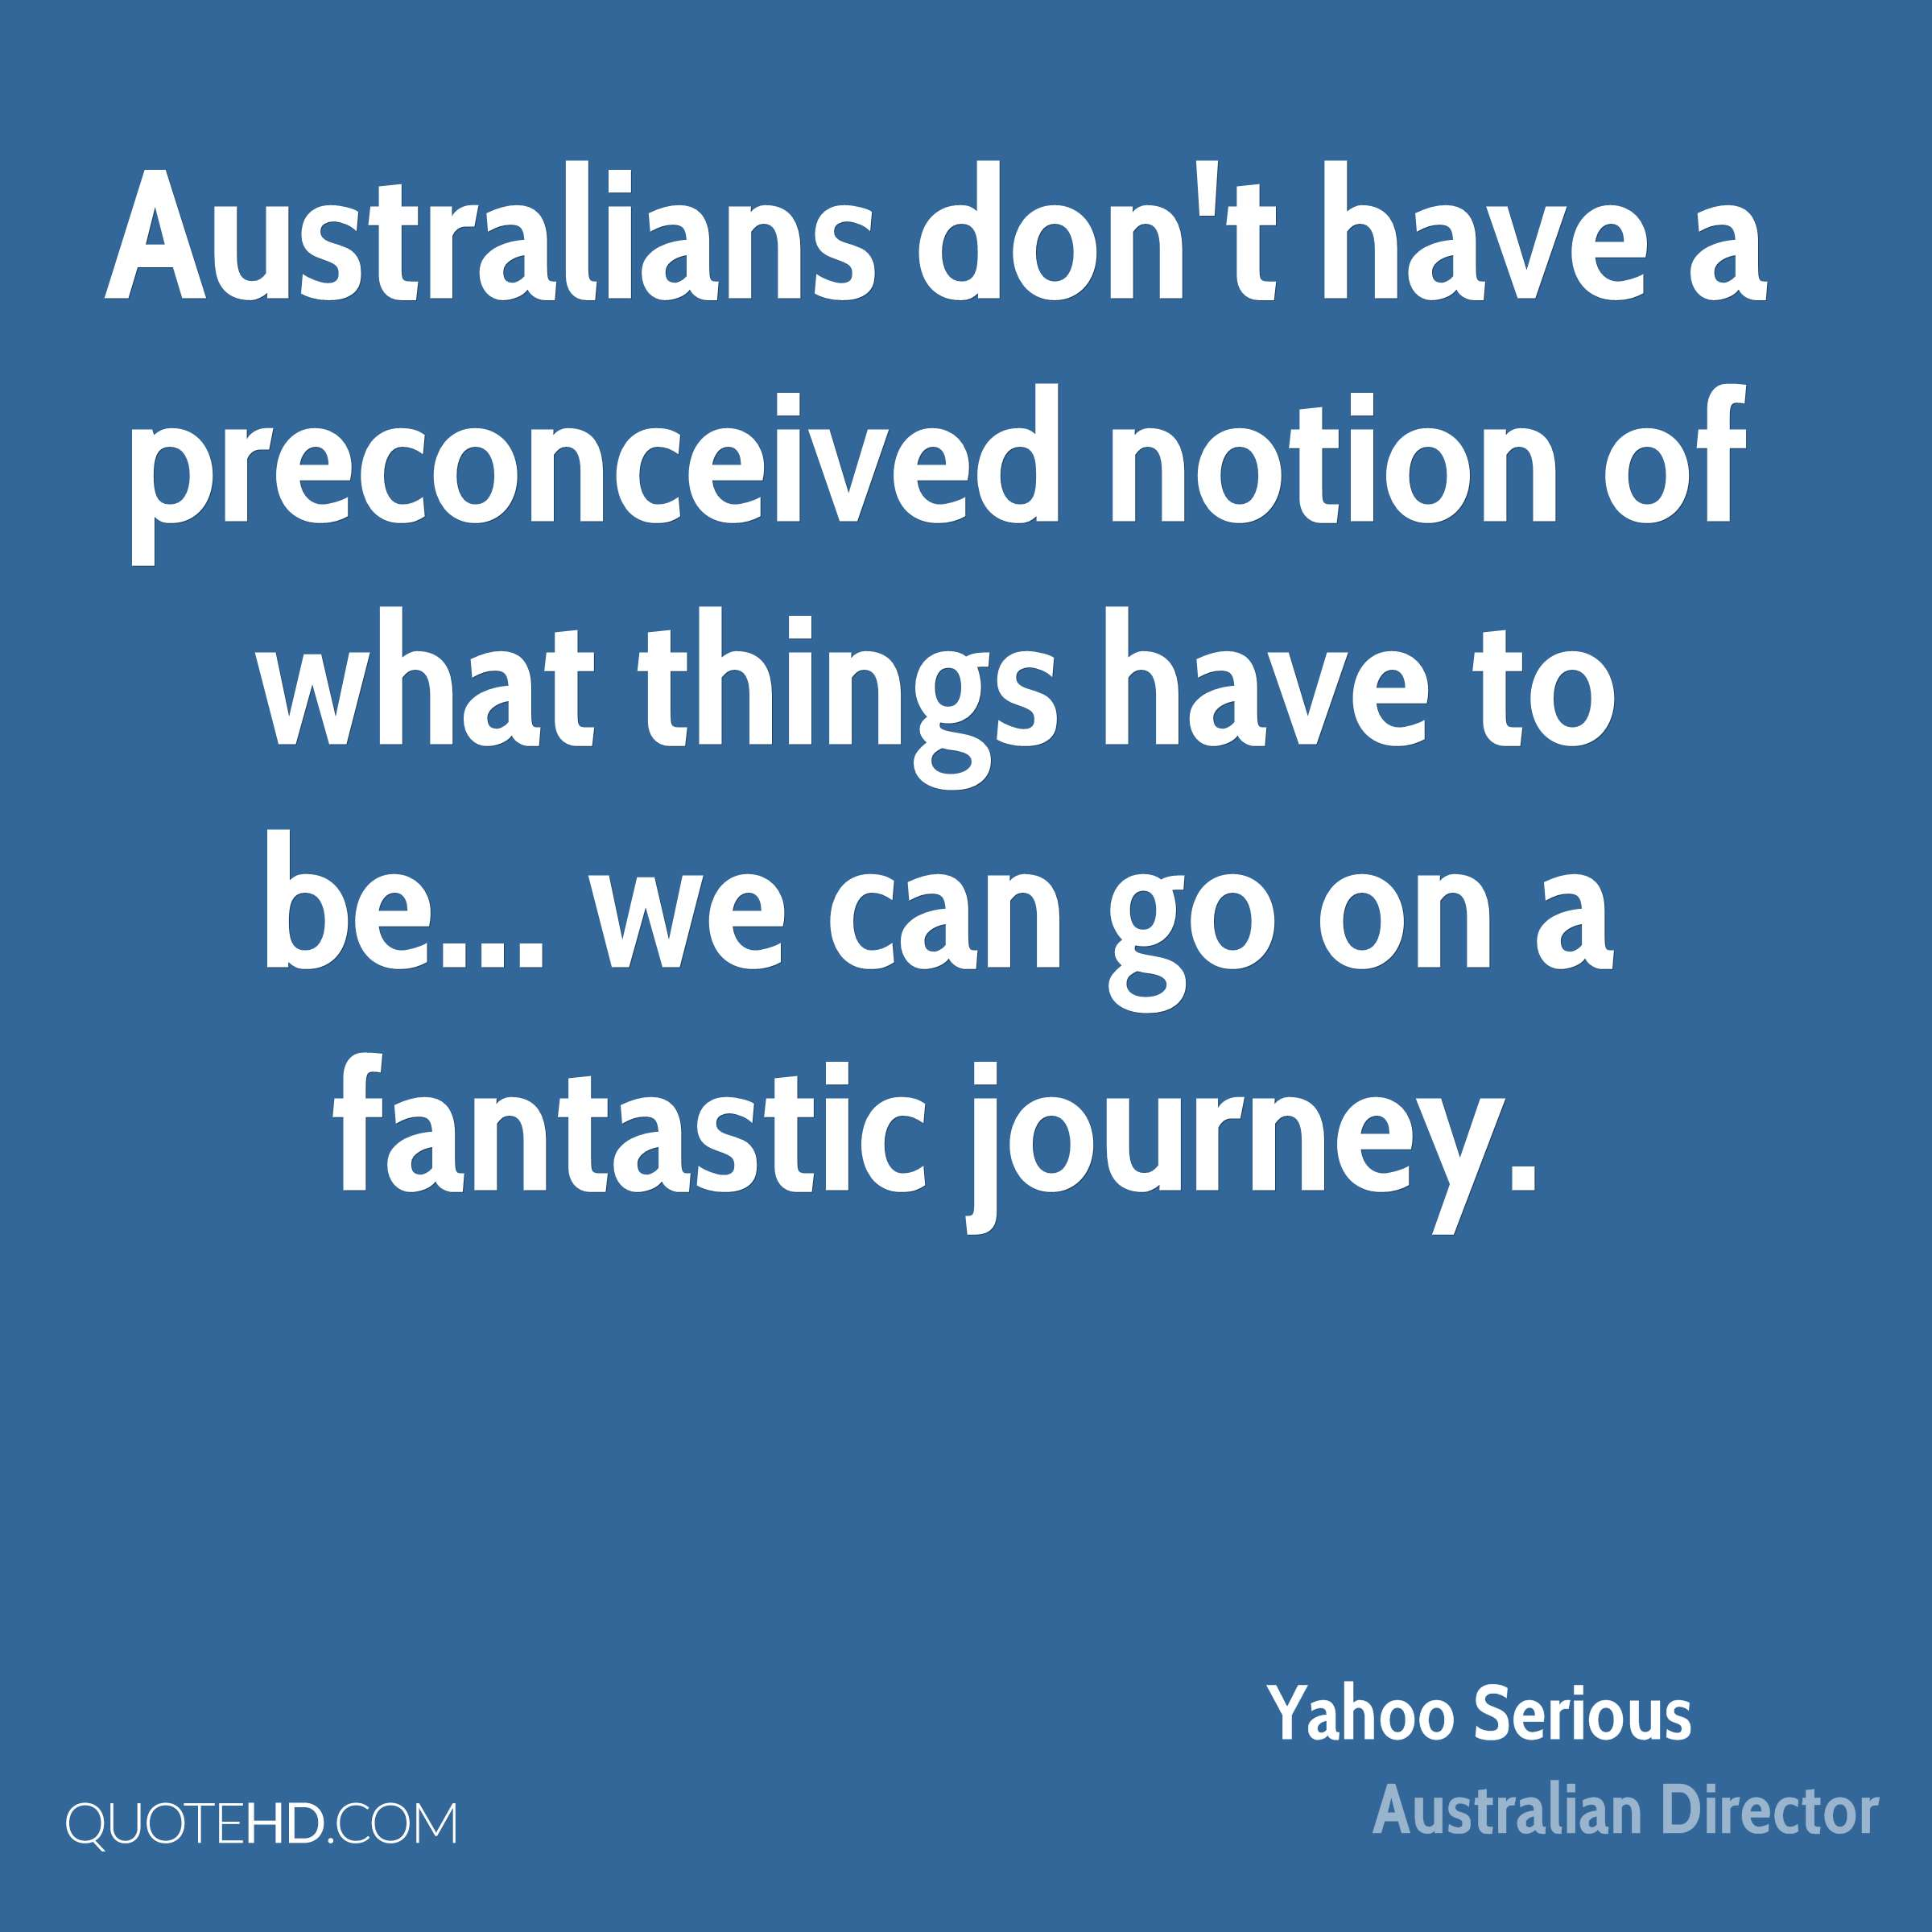 Australians don't have a preconceived notion of what things have to be... we can go on a fantastic journey.